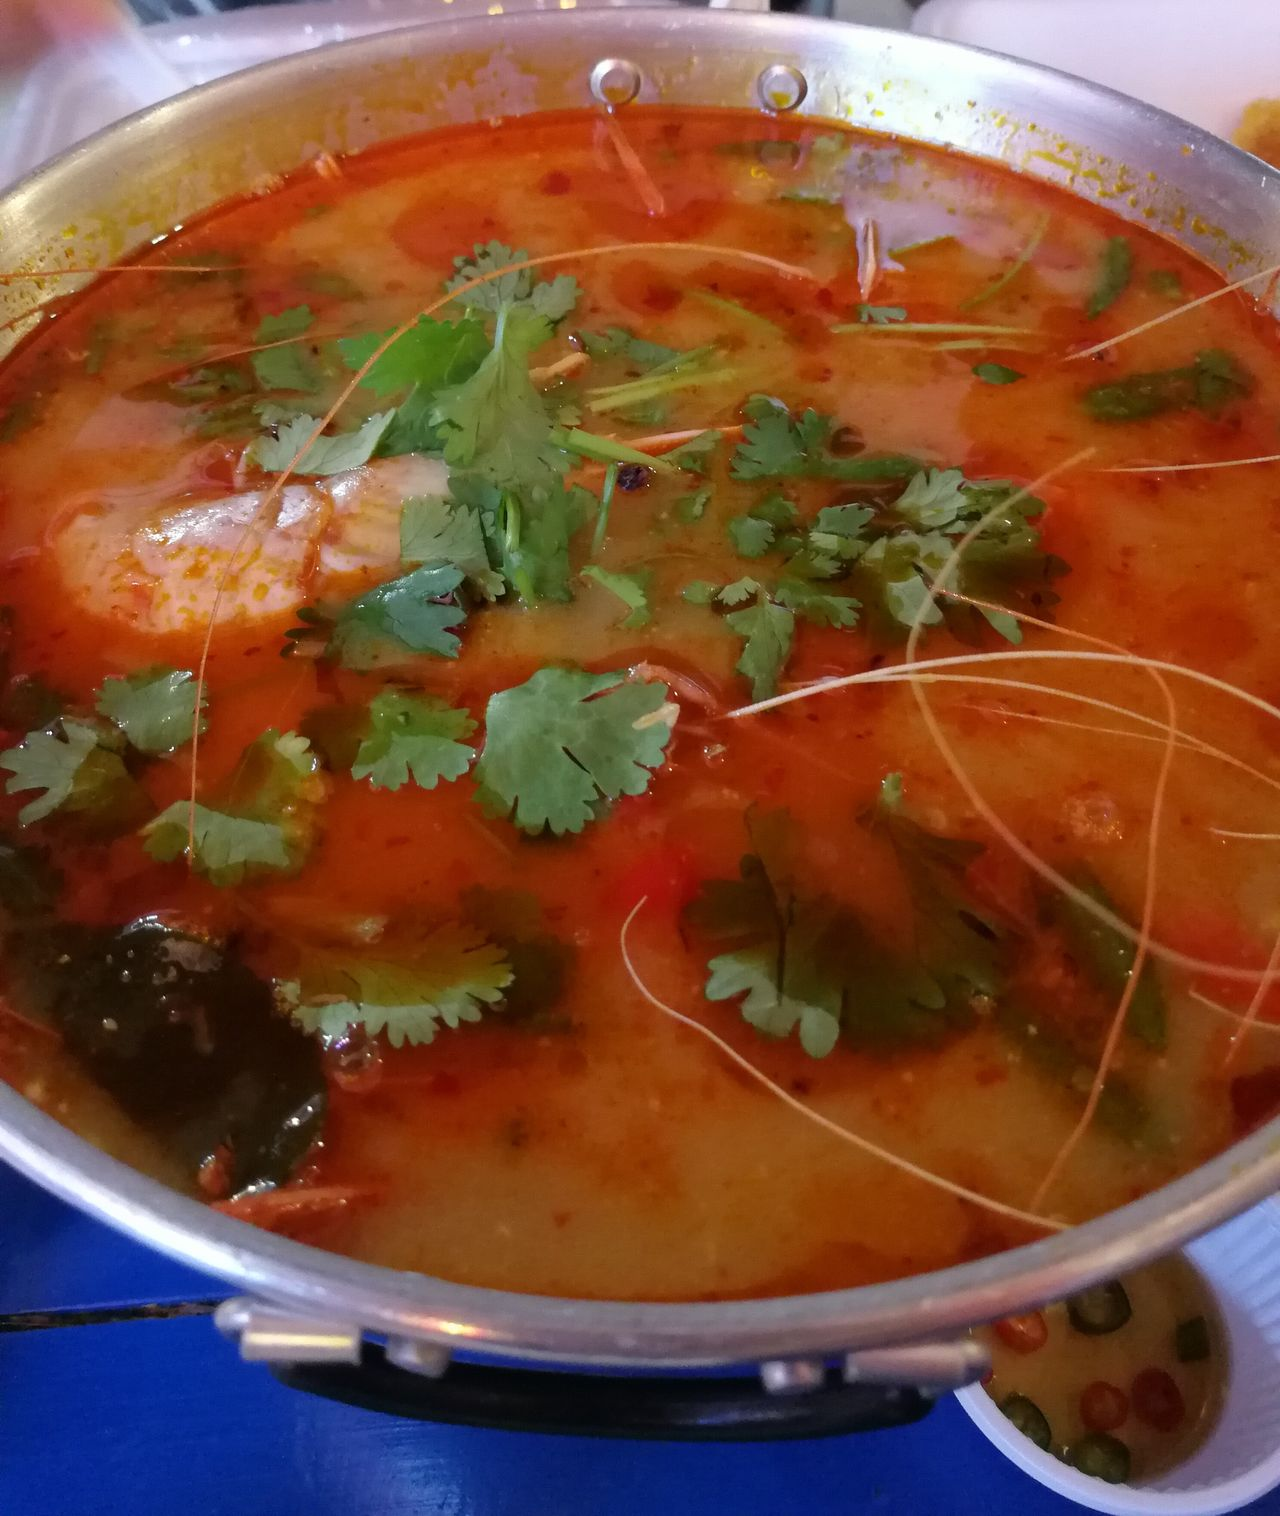 Tom Yum Seafood - Thai Spicy Shrimp Soup Tom Yum Seafood Tom Yum Goong Tom Yum Kung Taste Thai Food